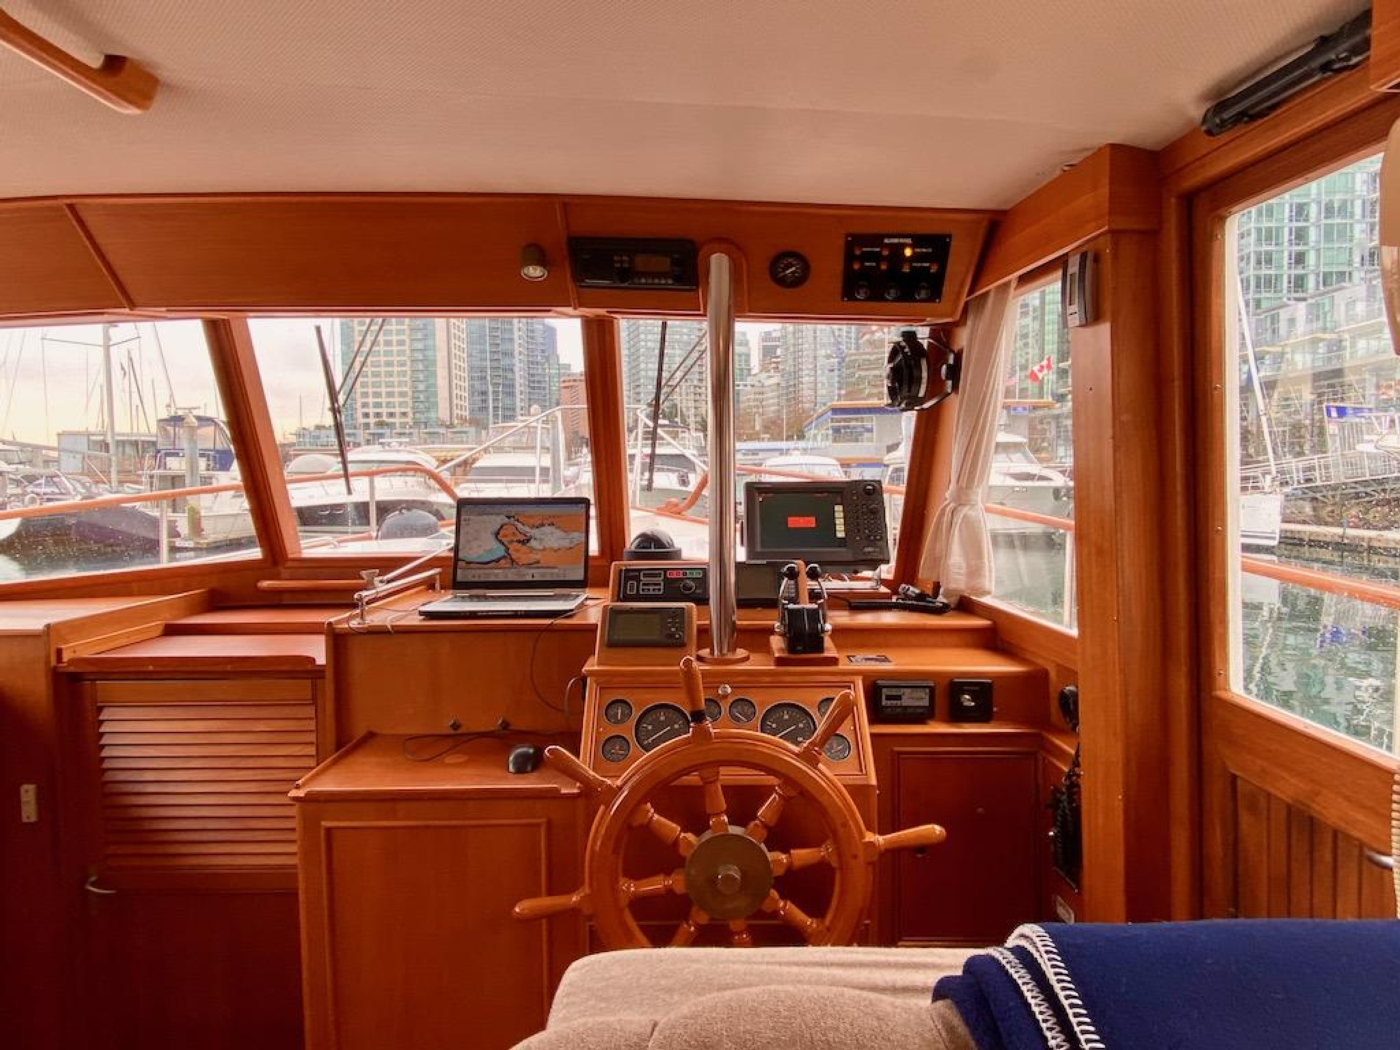 1998 Grand Banks 42 Classic, Lower helm 3